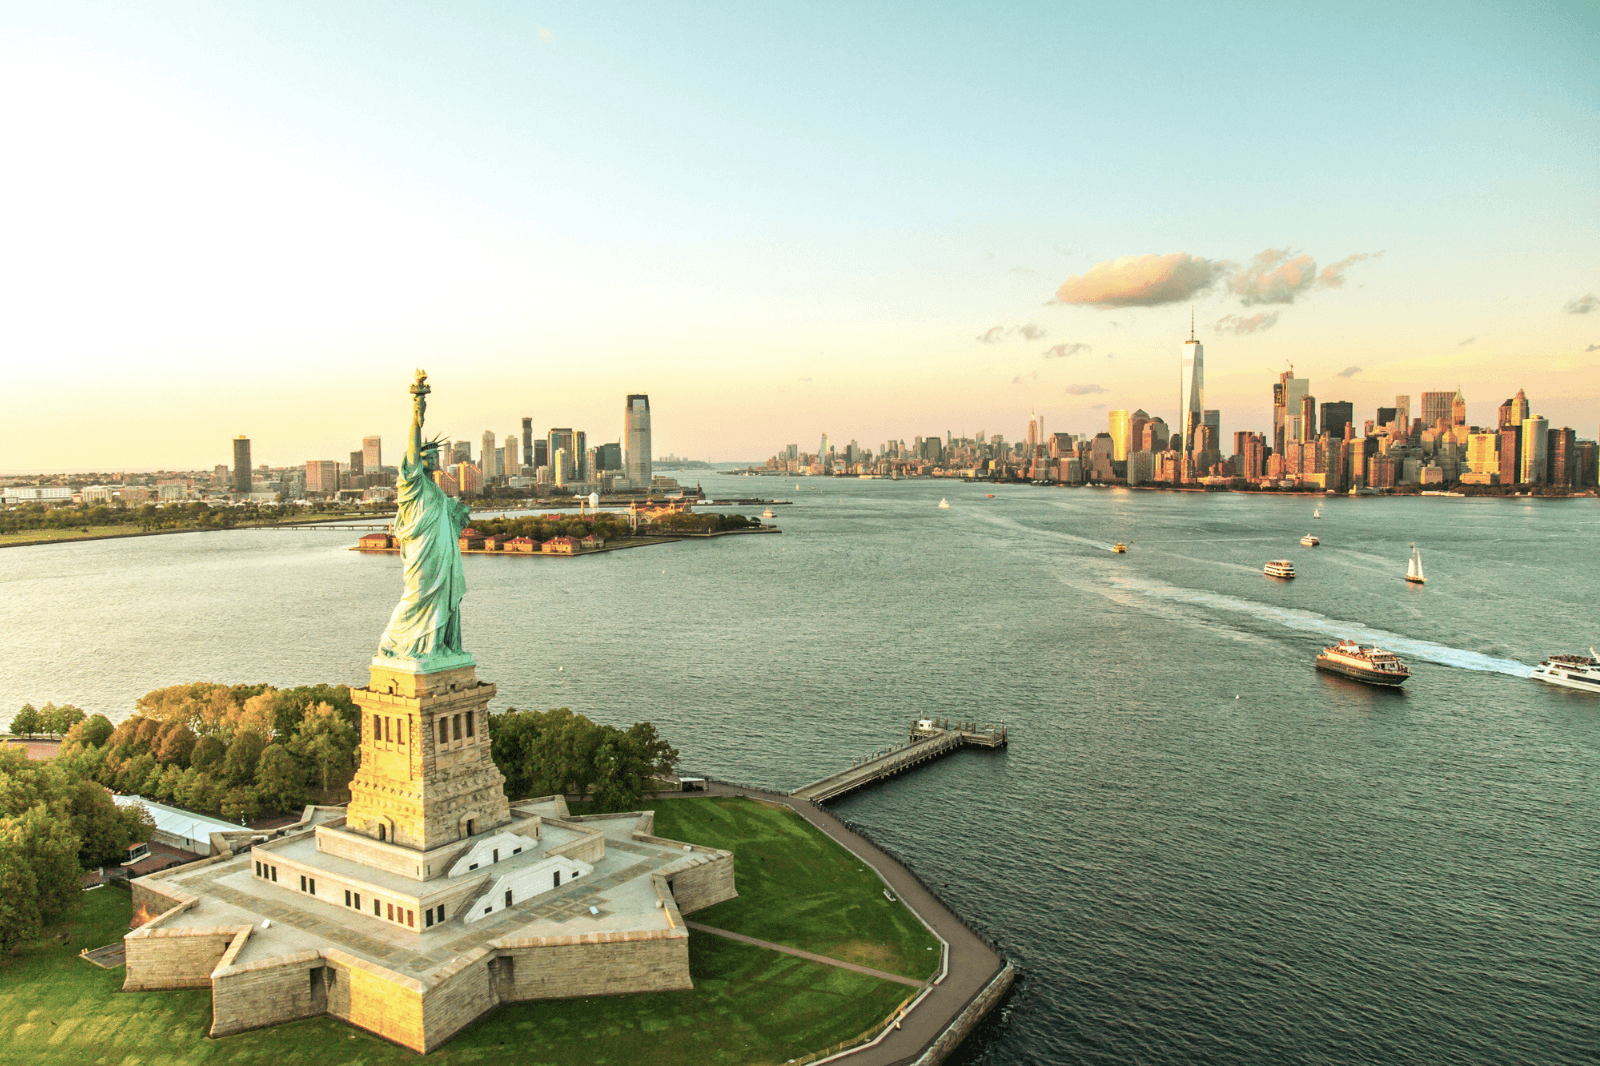 Celebrating NYC: 10 Must-See Sights According to a Local